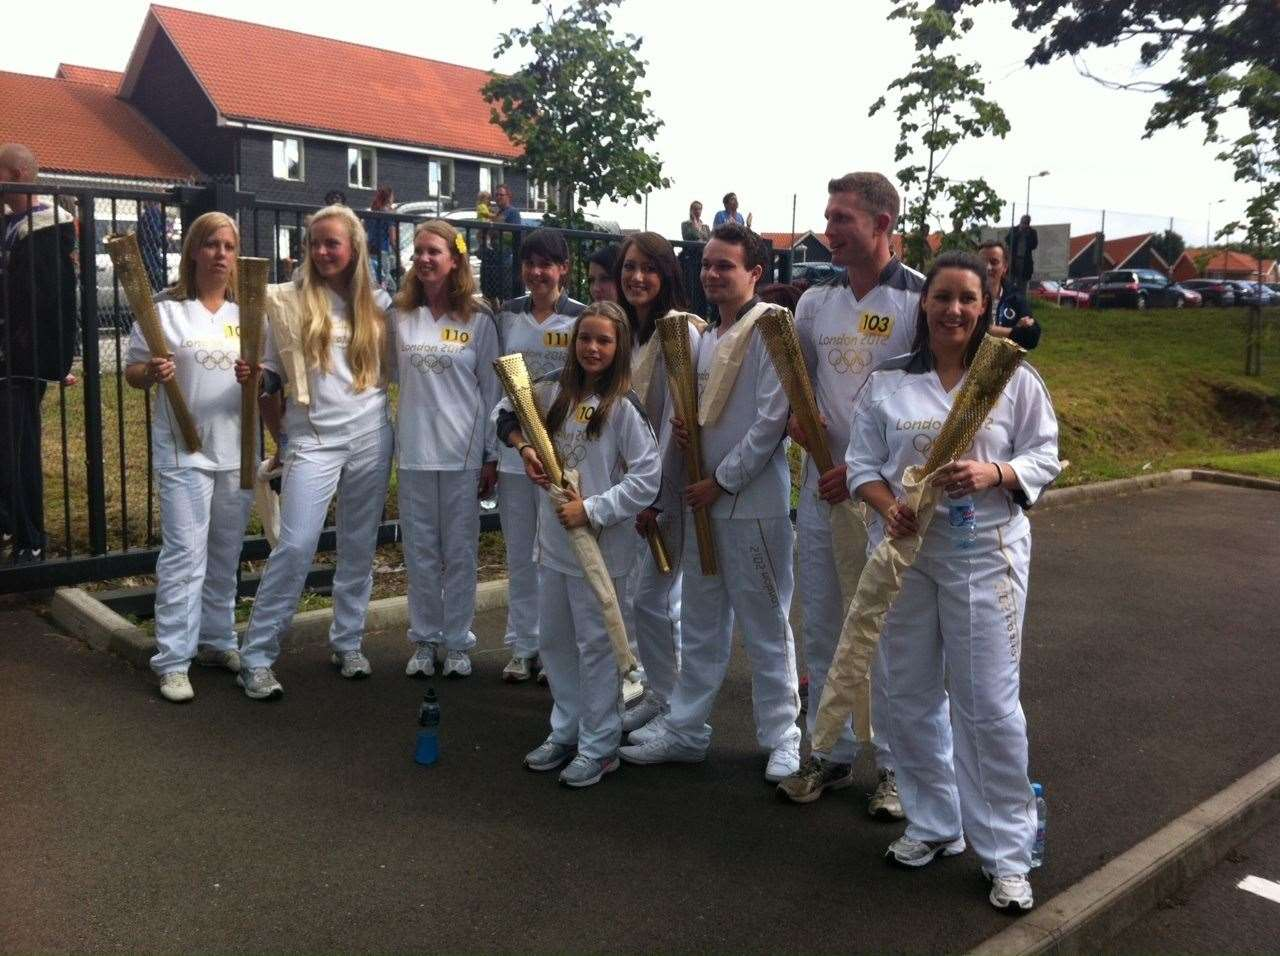 Homewood School pupil Ella Barnes (centre) with fellow Canterbury torchbearers after the relay. Pic: Joanne Barnes